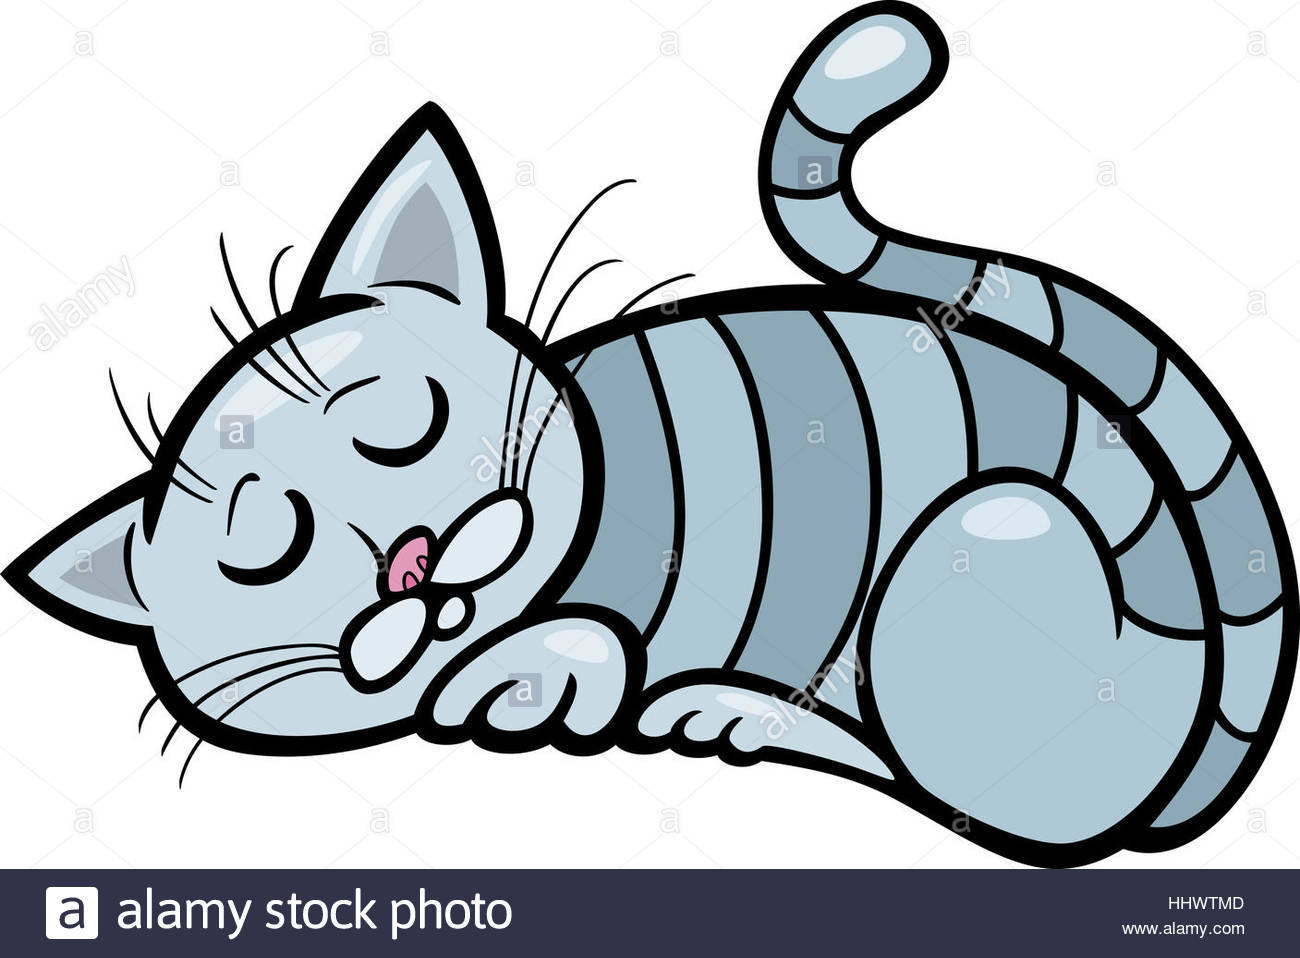 1300x958 Kitten Clipart Sleepy Cat Free Collection Download And Share